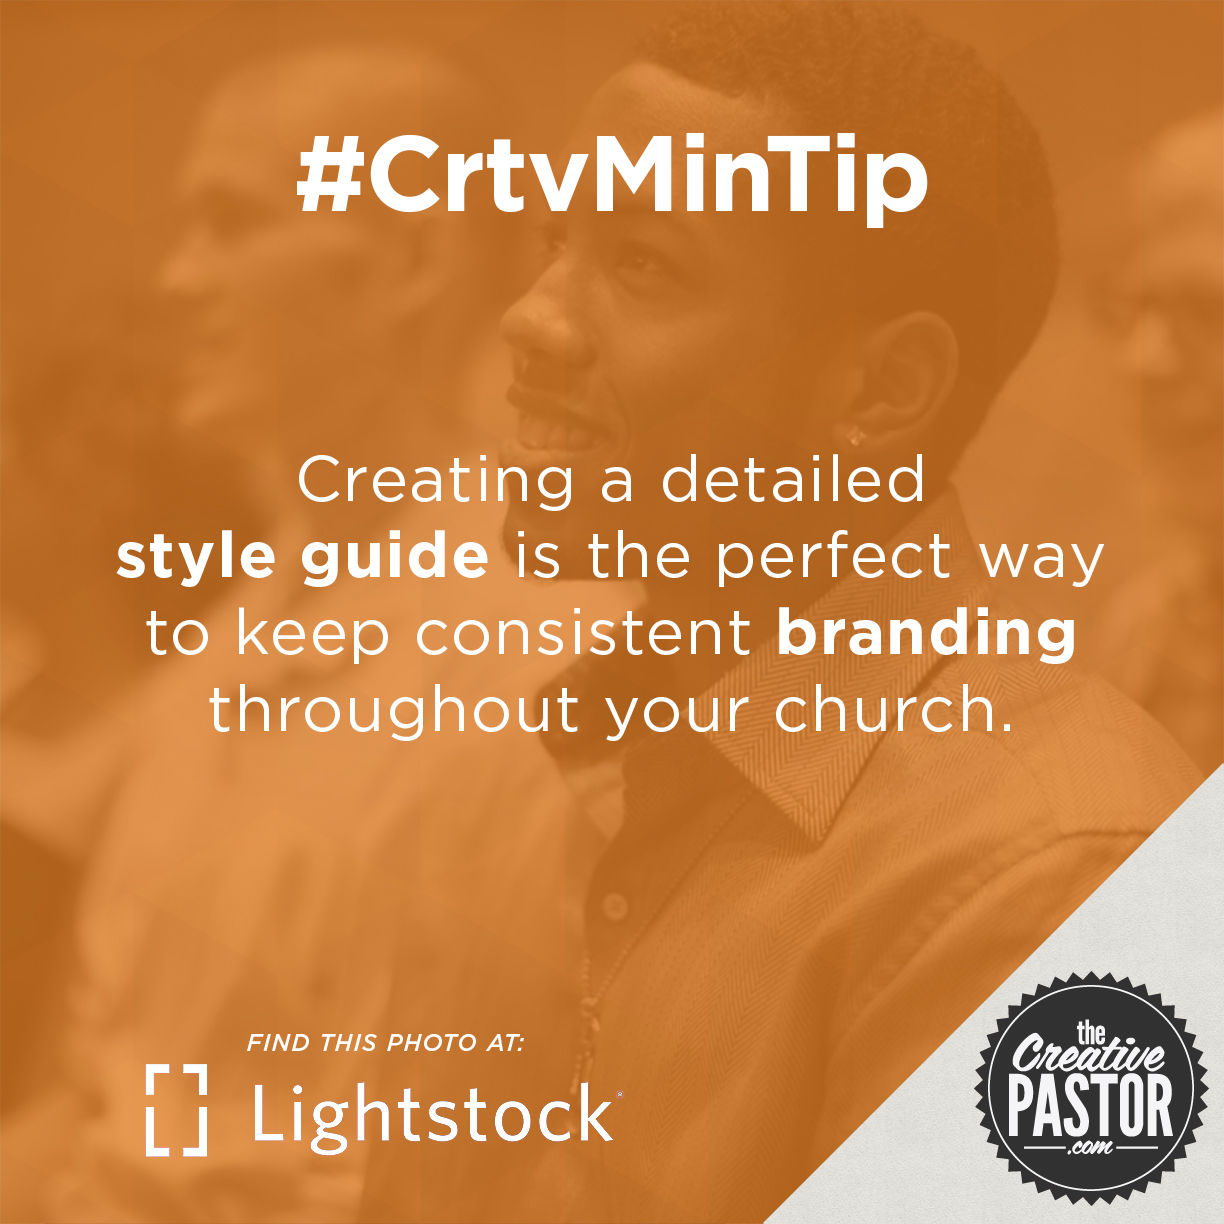 Creating a detailed style guide is the perfect way to keep consistent branding throughout your church.